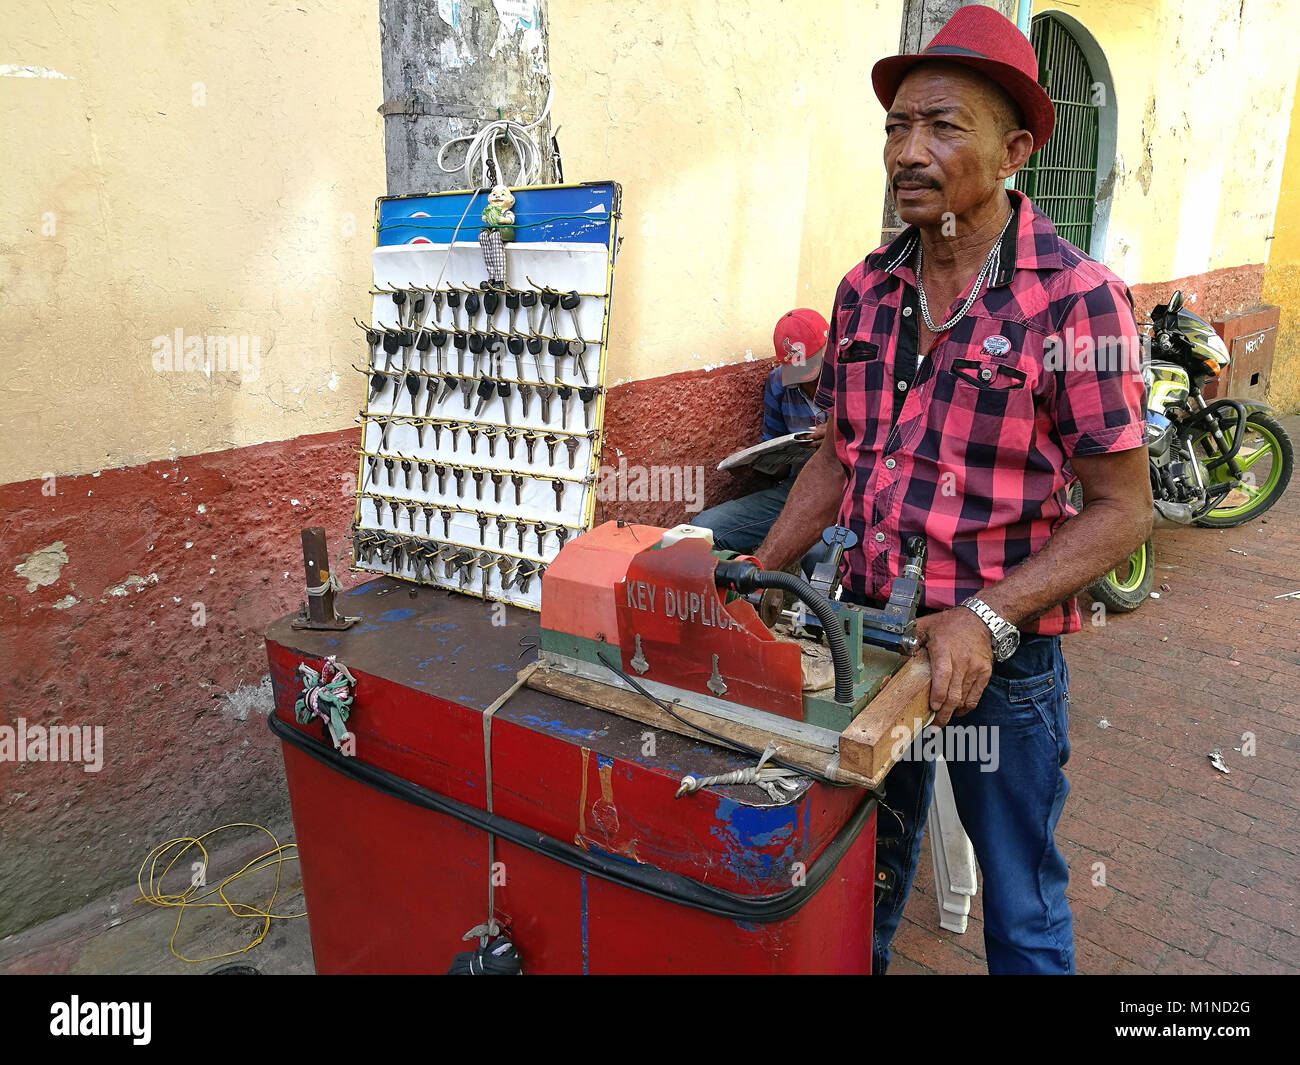 Cartagena, Colombia - January 24th, 2018: A Colombian locksmith working on the street at the Old Town in Cartagena. - Stock Image